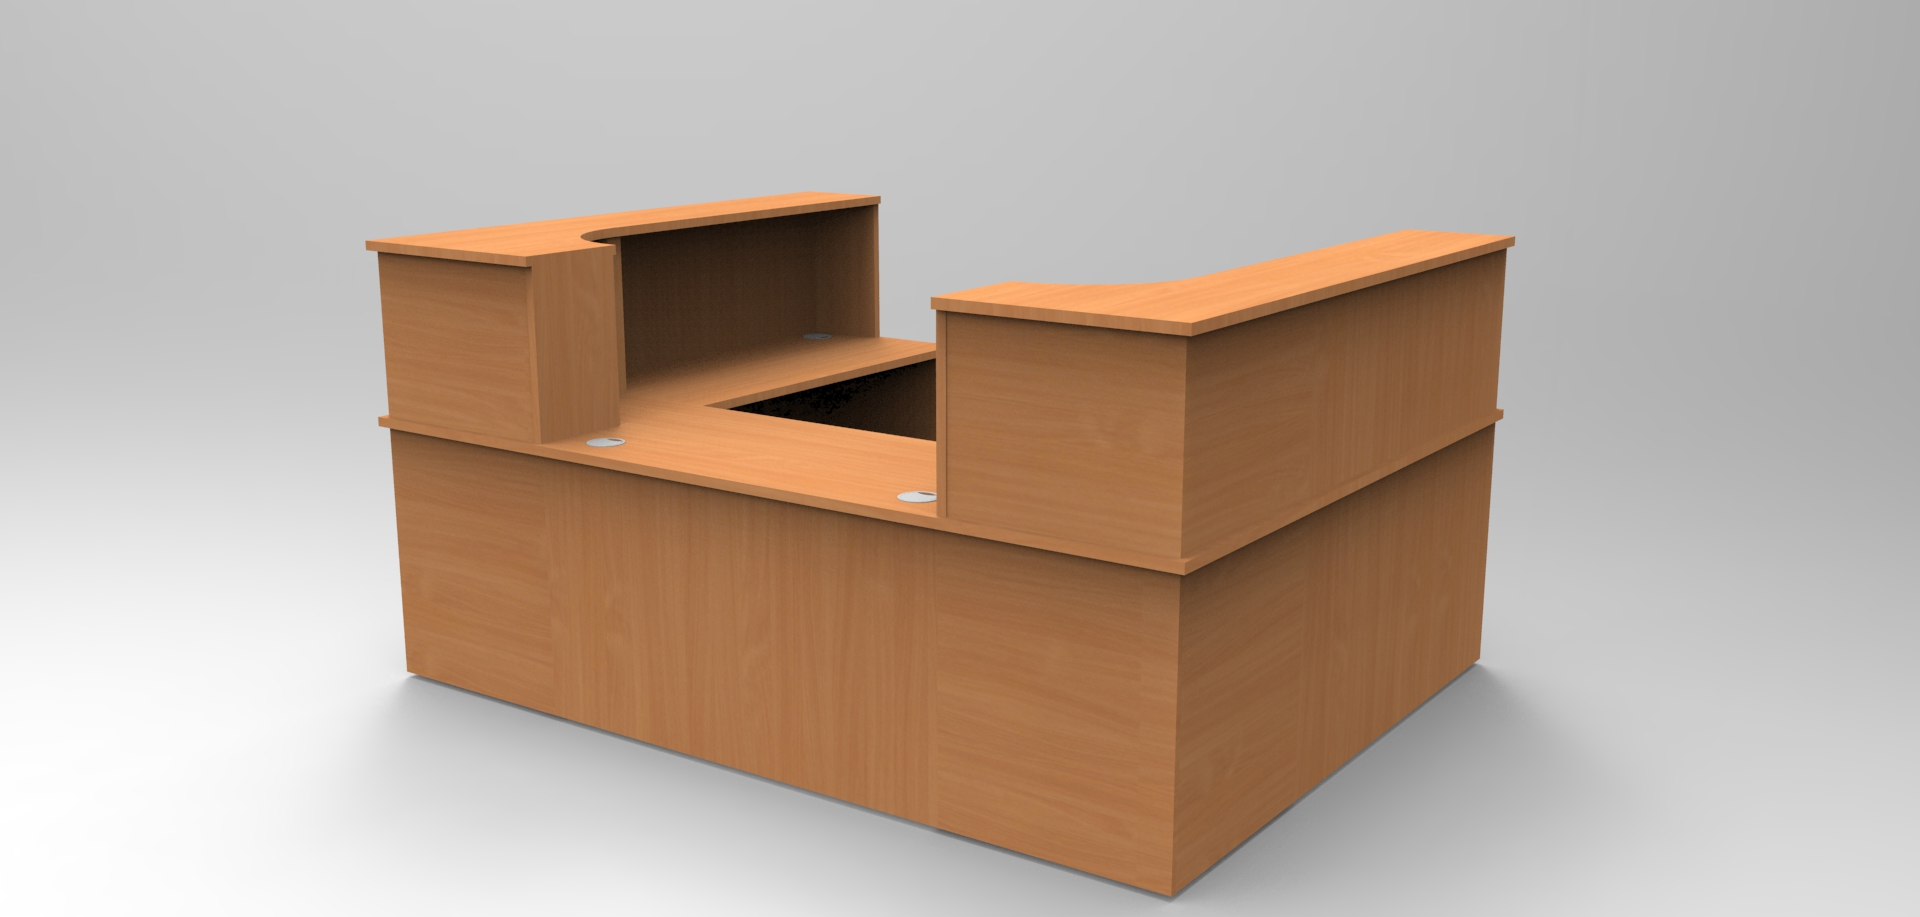 Image 31C - Classice Single reception desk finished in Beech